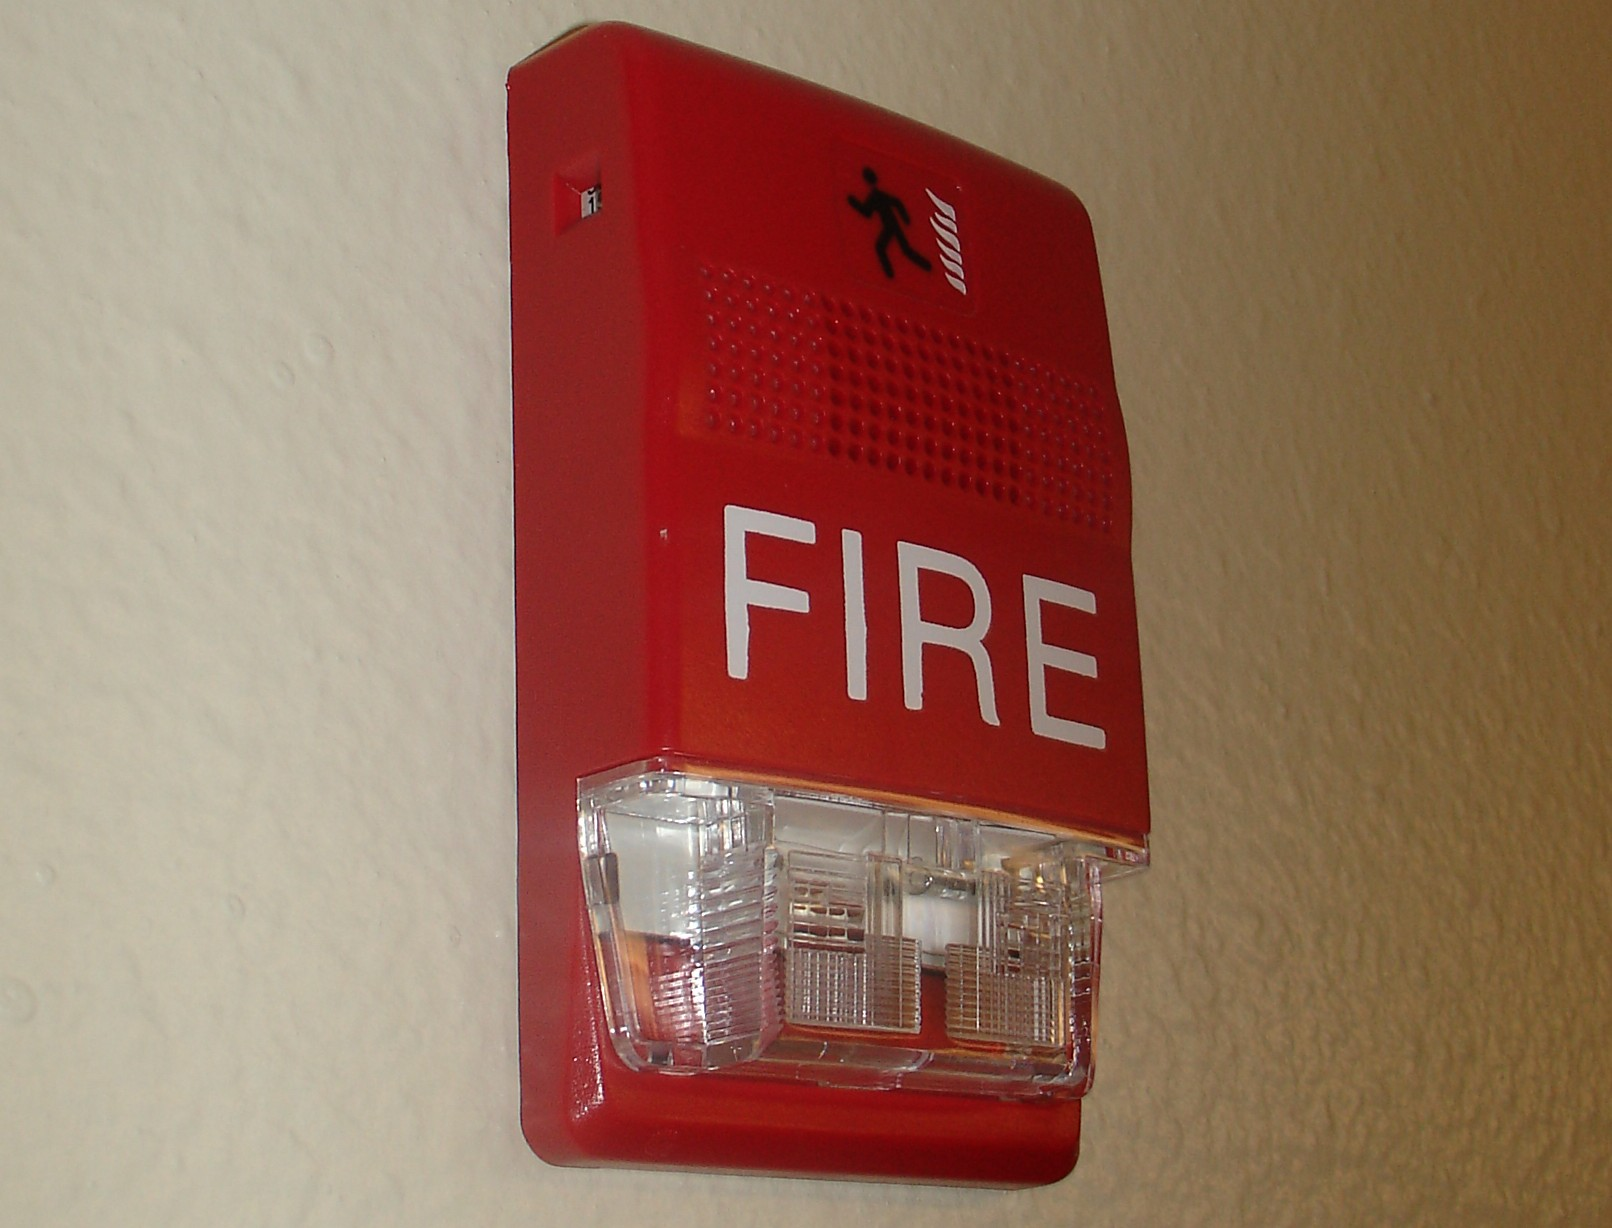 AEGIS Fire Protection Engineering - Fire Detection Systems & Fire Alarm Systems